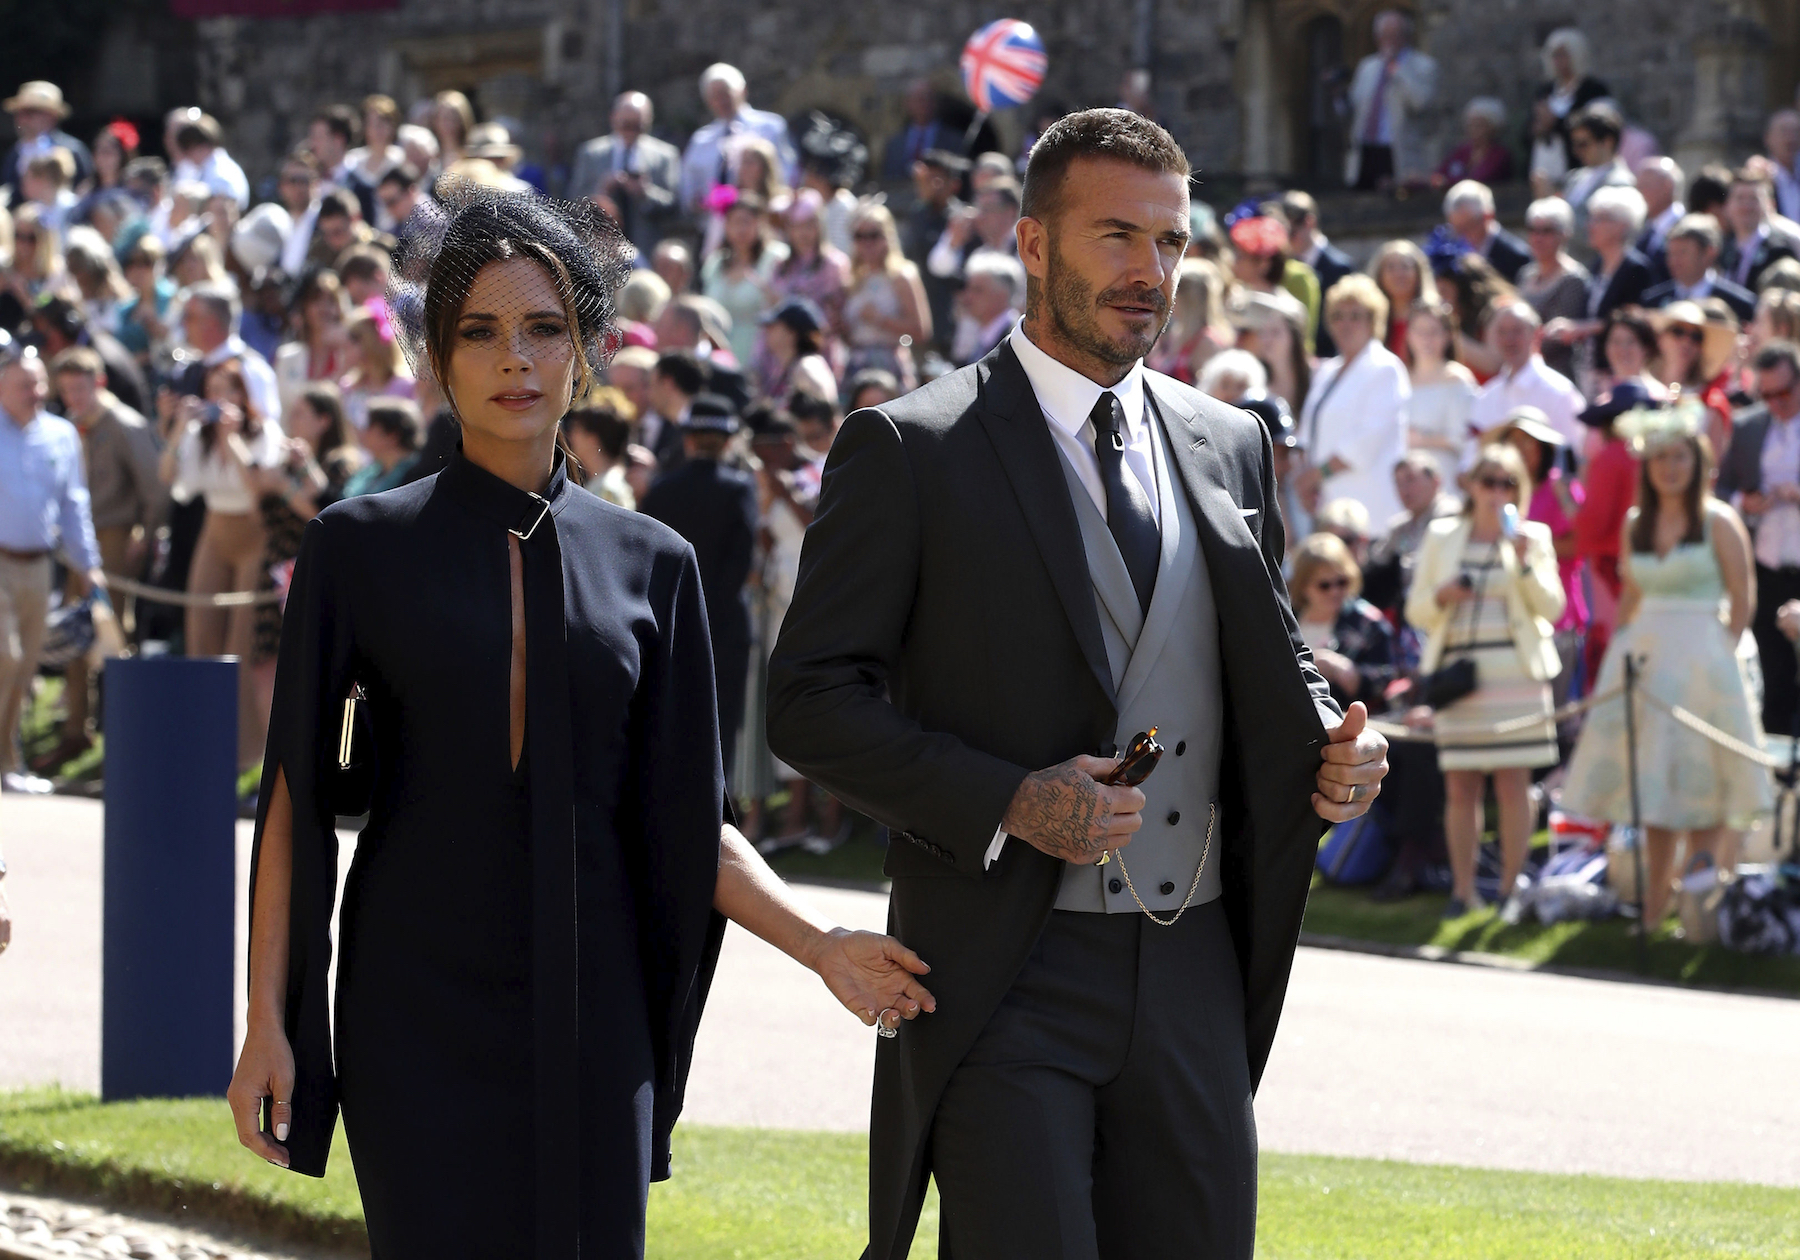 <div class='meta'><div class='origin-logo' data-origin='AP'></div><span class='caption-text' data-credit='Chris Radburn/PA Wire'>David and Victoria Beckham arrive at St George's Chapel at Windsor Castle for the wedding of Meghan Markle and Prince Harry.</span></div>